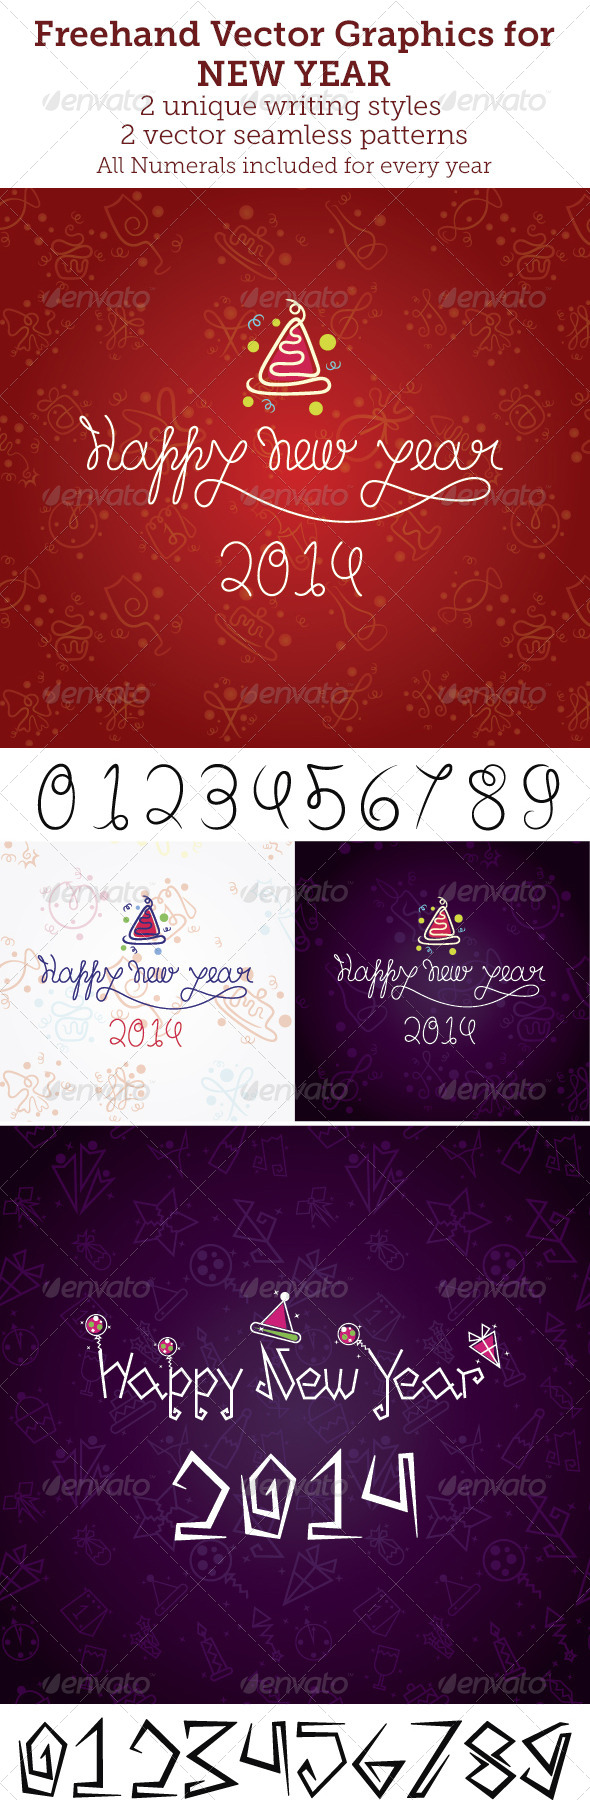 Freehand Vector Graphics for New Year - Decorative Vectors